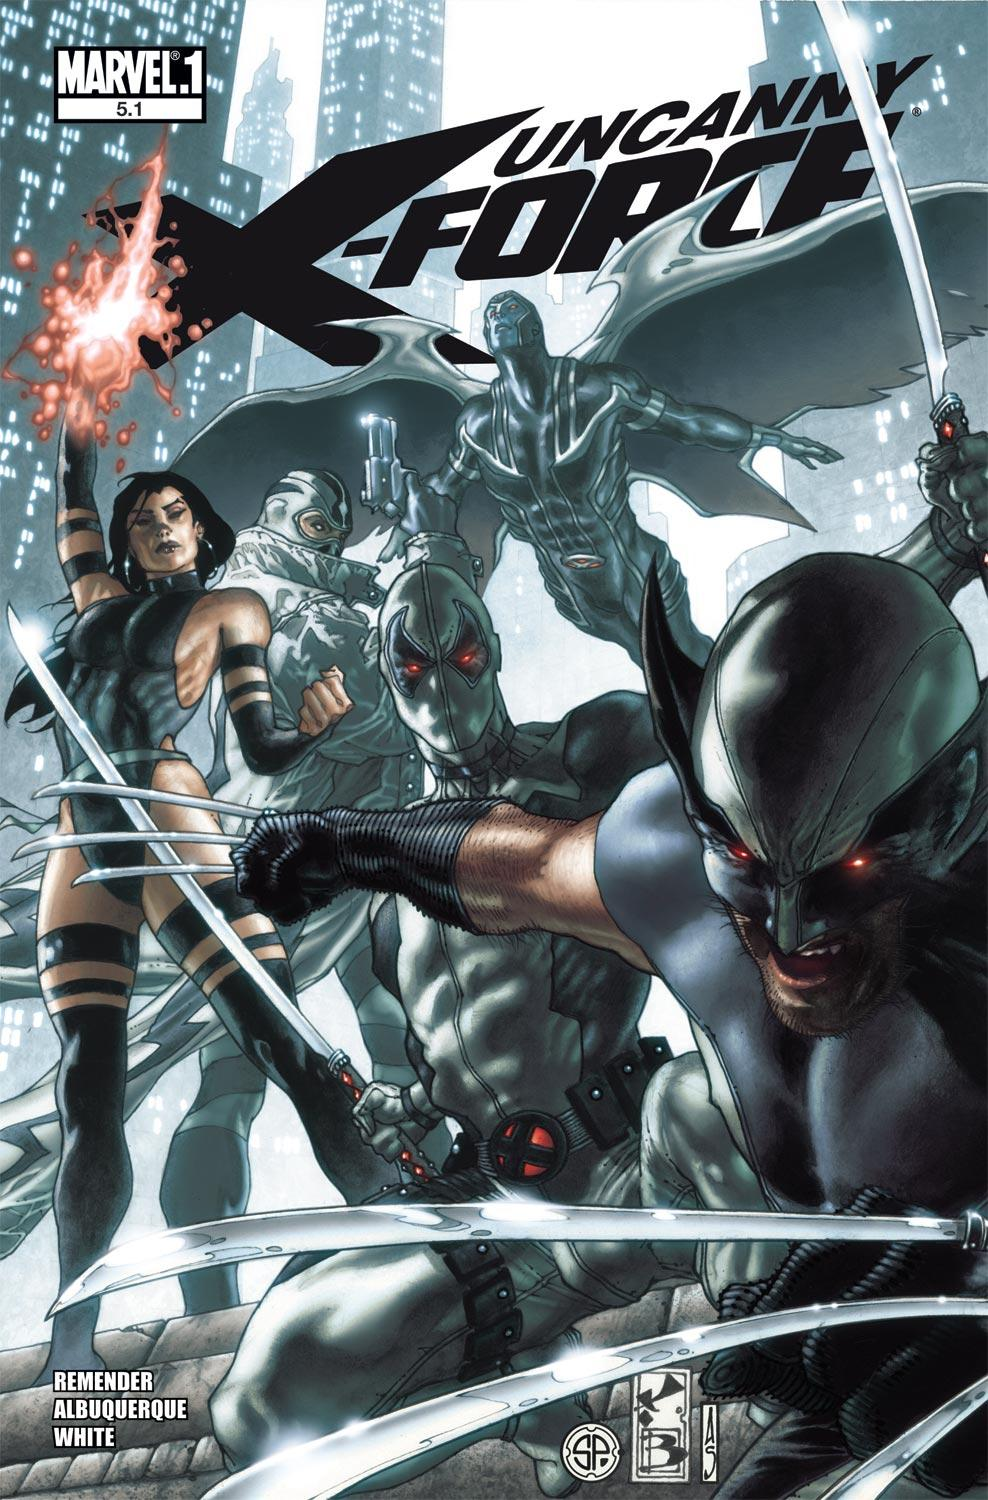 Uncanny X-Force (2010) #5.1